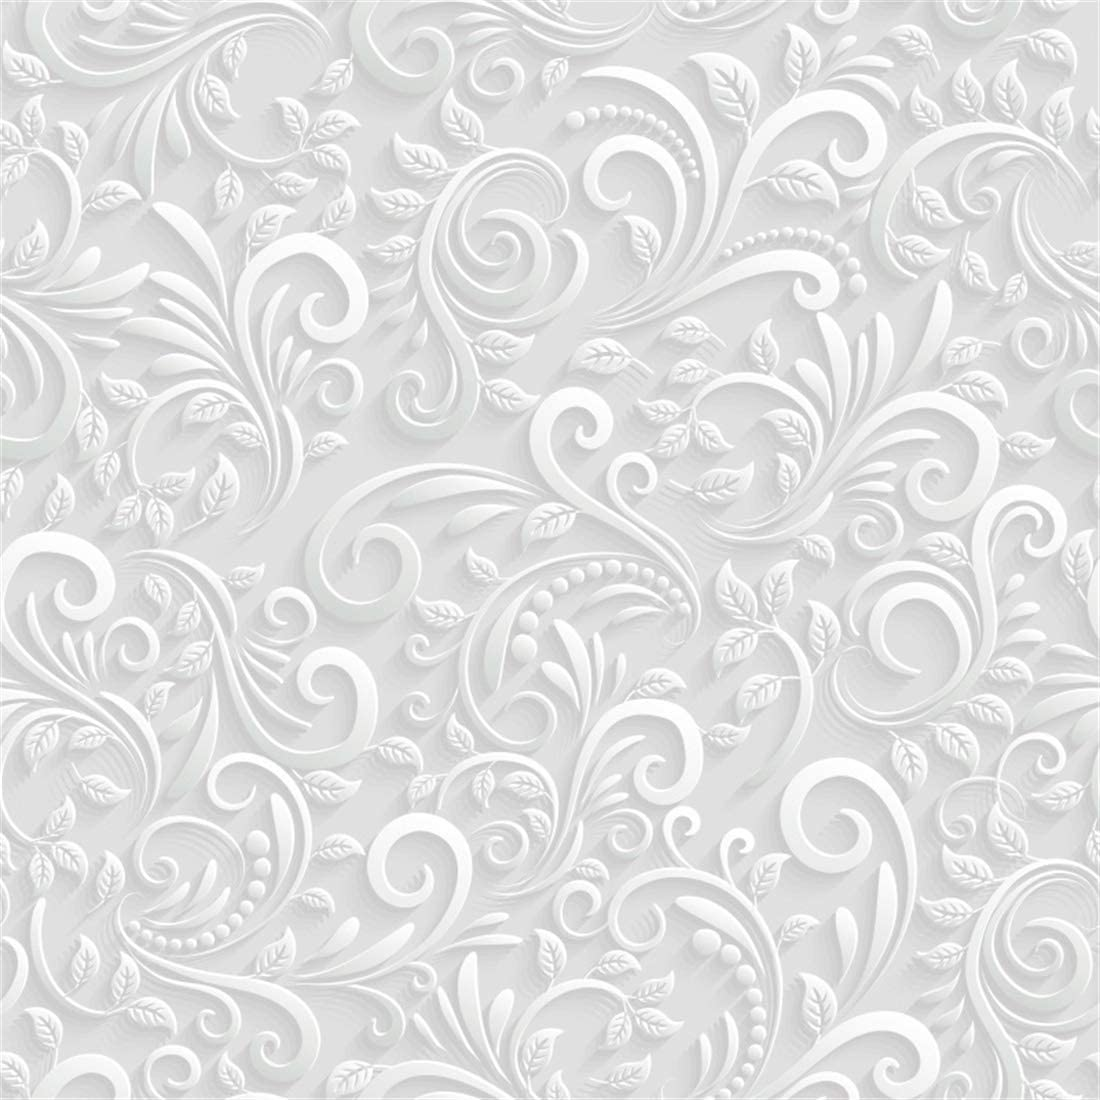 YEELE 10x10ft Floral 3D Pattern Backdrop for Photography Classic Room Interior Background Vintage House Theme YouTube Video Vlogger Baby Kids Girls Portrait Shooting Photo Studio Booth Wallpaper